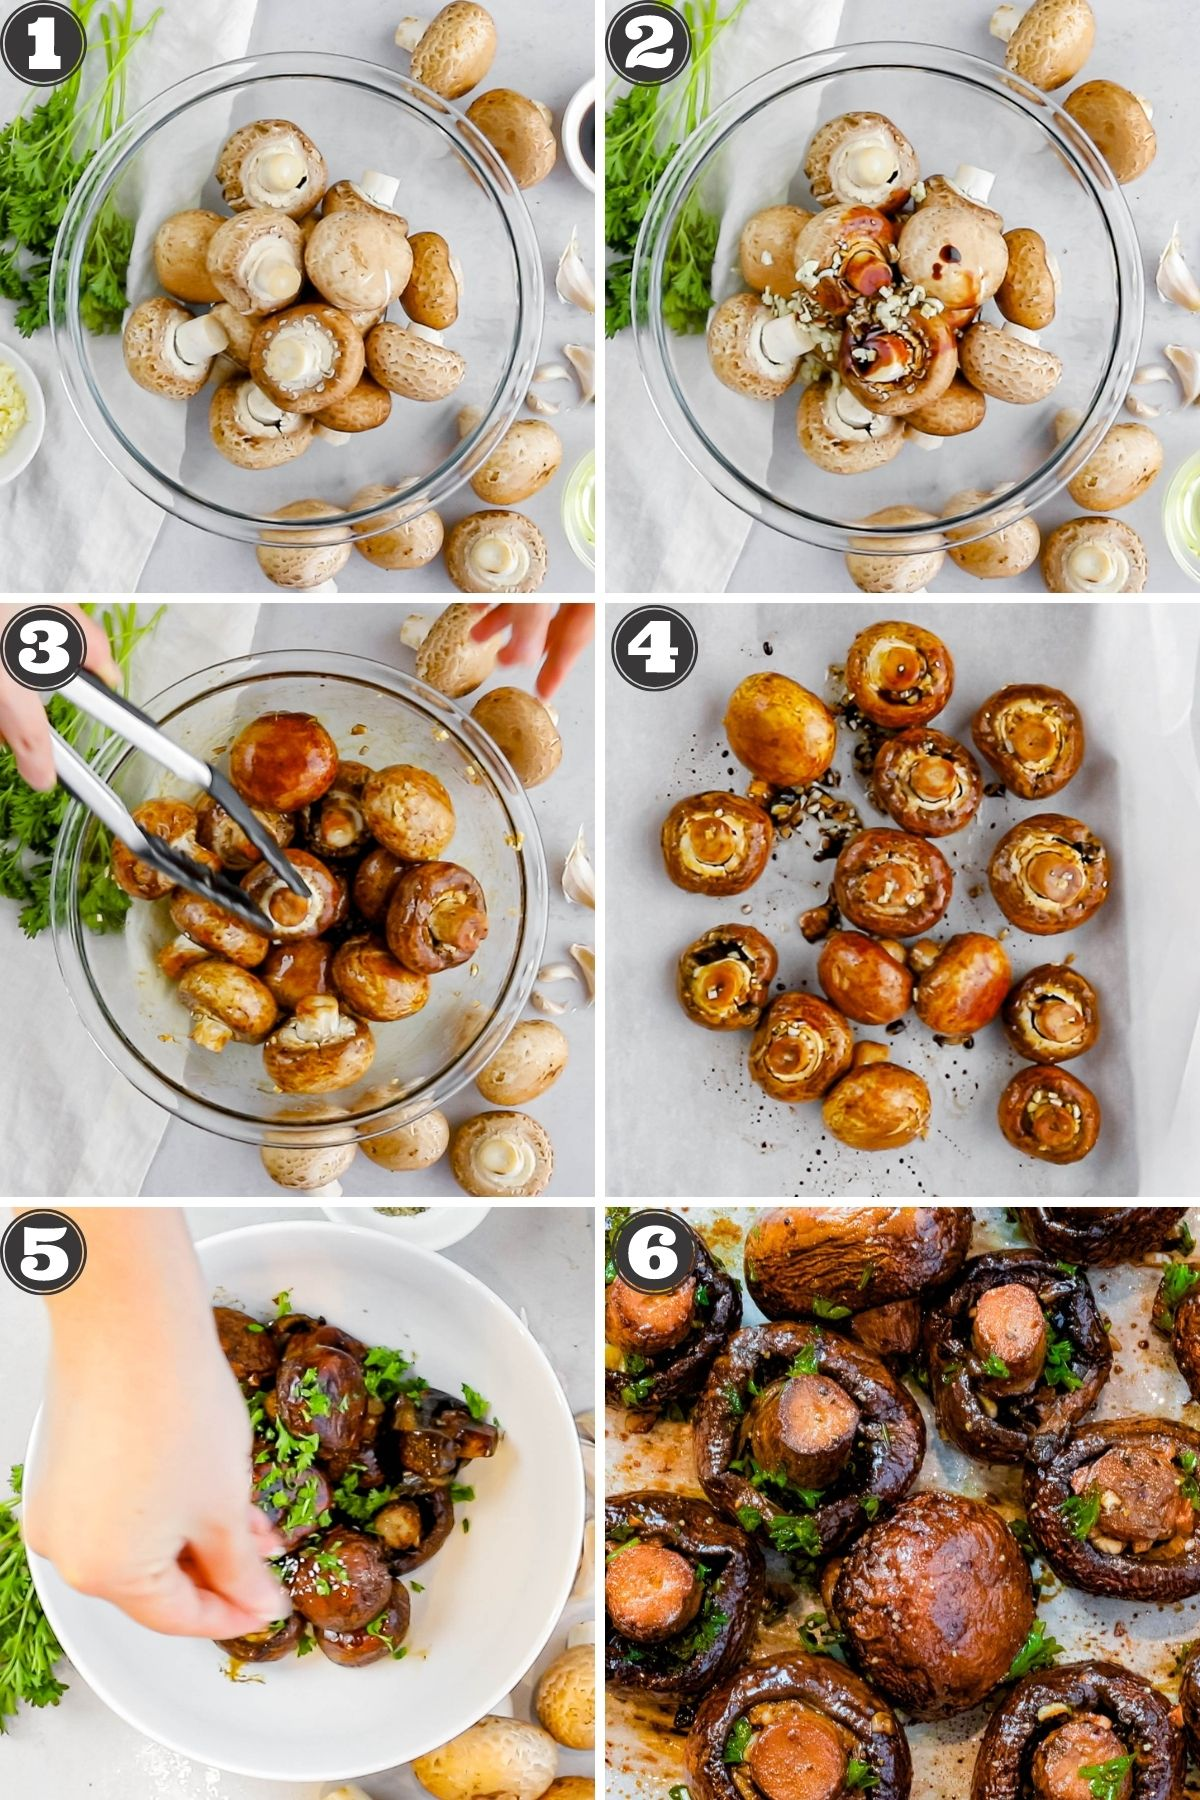 numbered step by step photos for roasted mushrooms